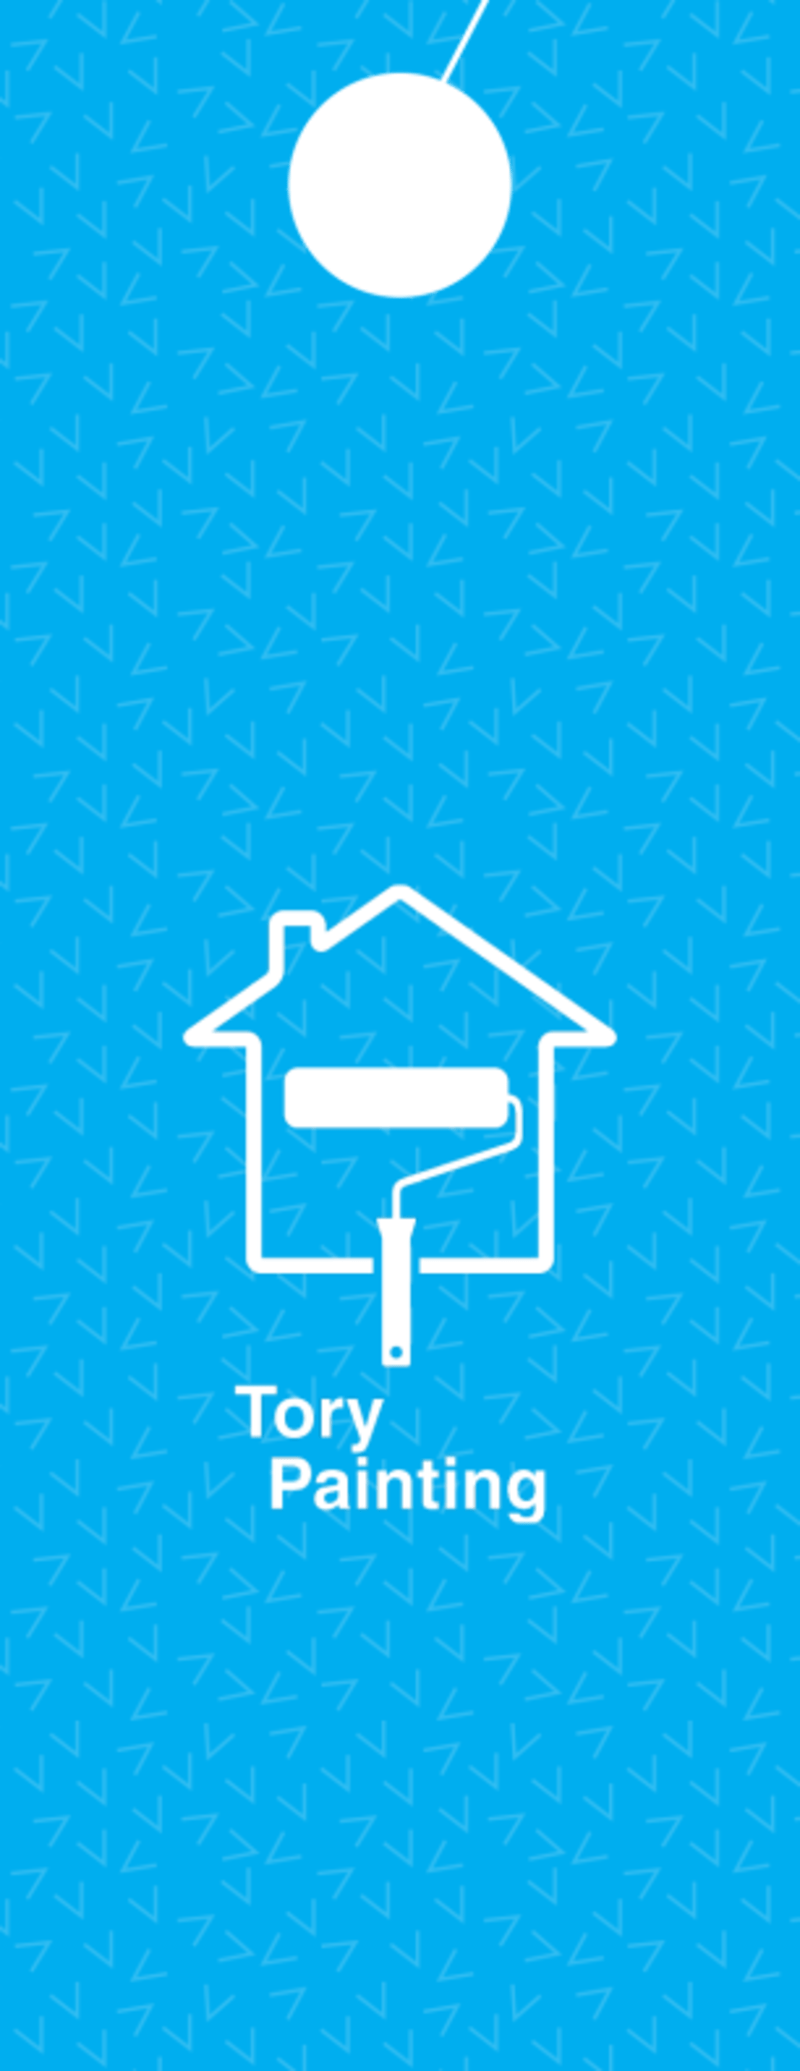 Tory Painting Discount Door Hanger Template Preview 3